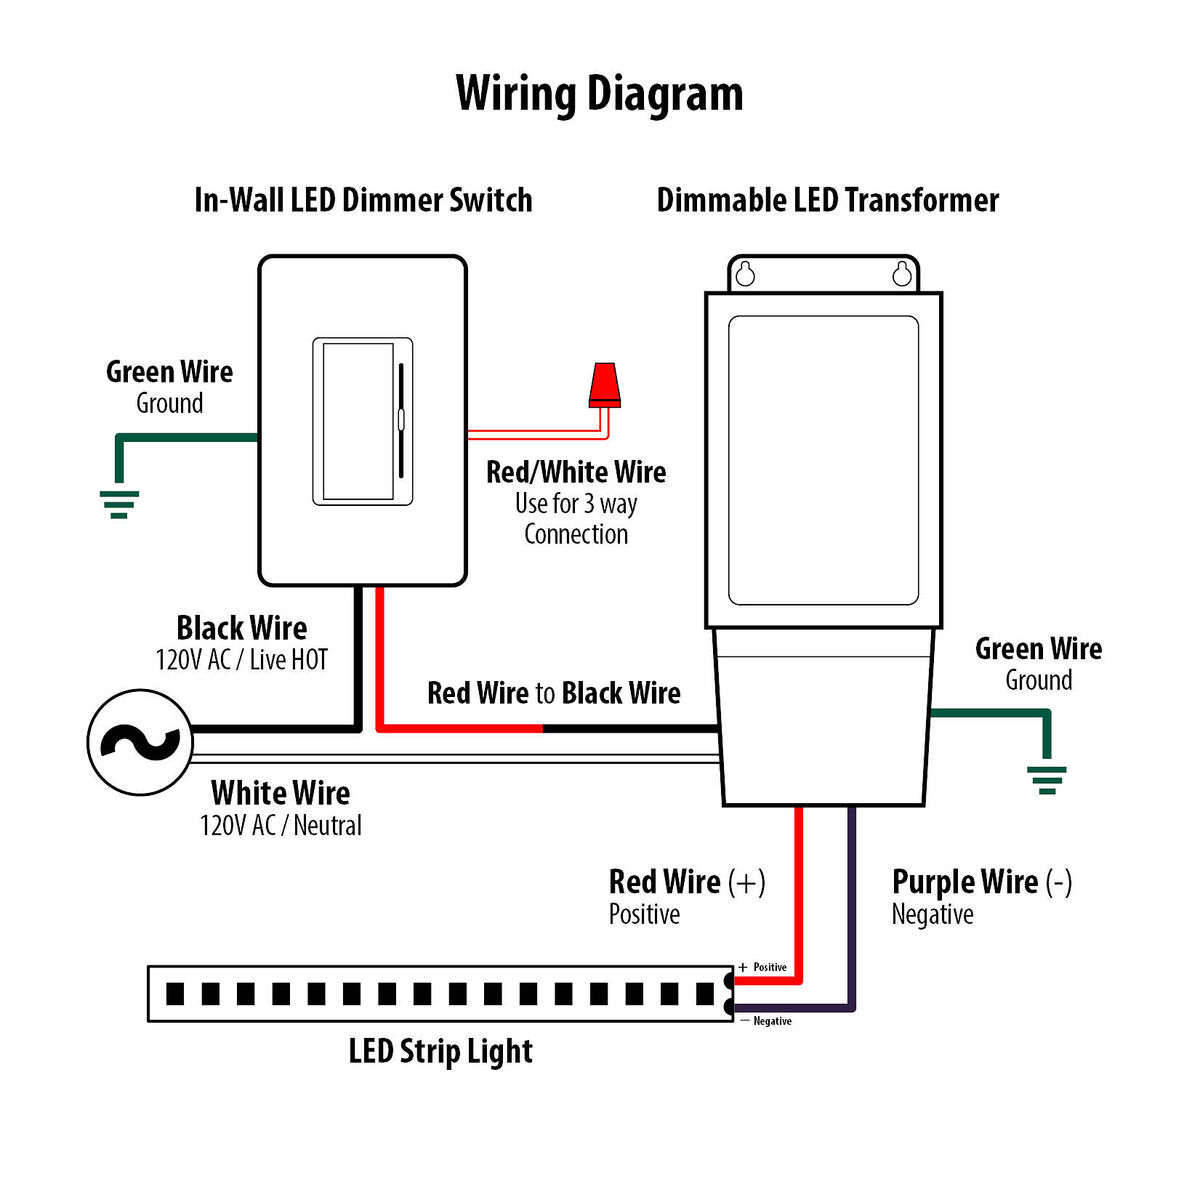 hight resolution of dimmer switch wiring diagram red wire